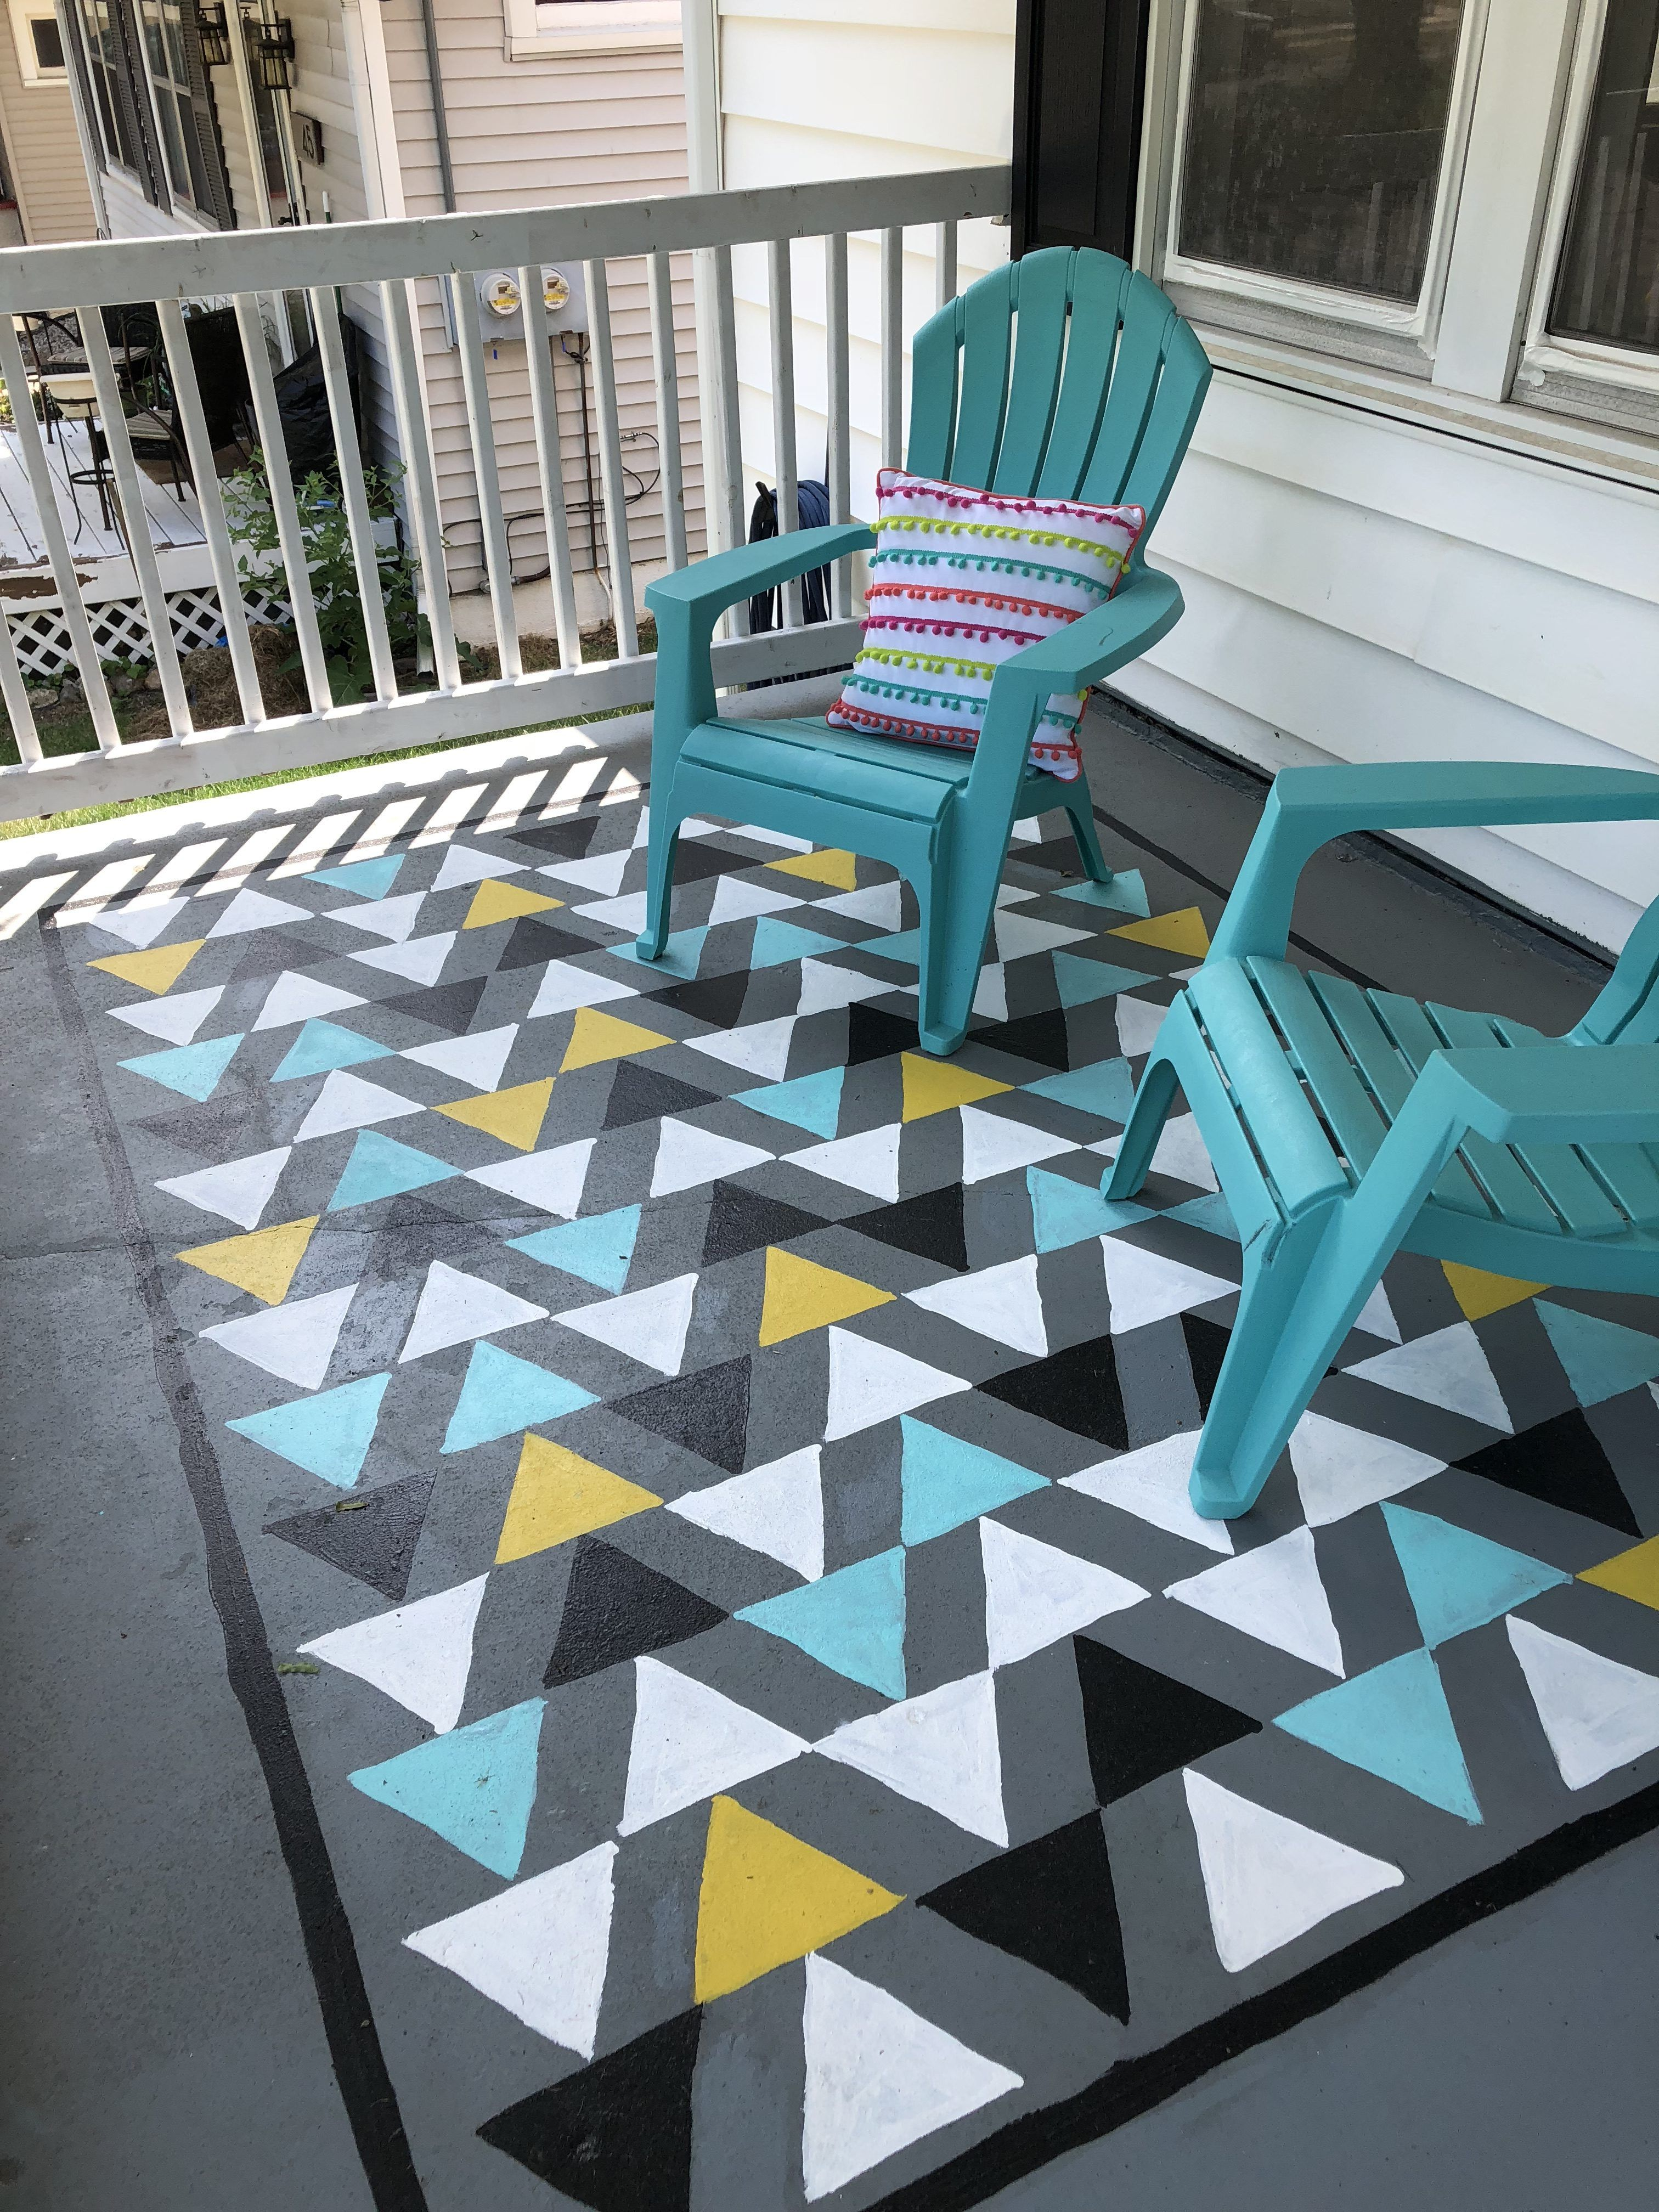 How To Stencil An Outdoor Rug Renovating Mapleson Manor Outdoor Rug Diy Painted Rug Outdoor Rugs